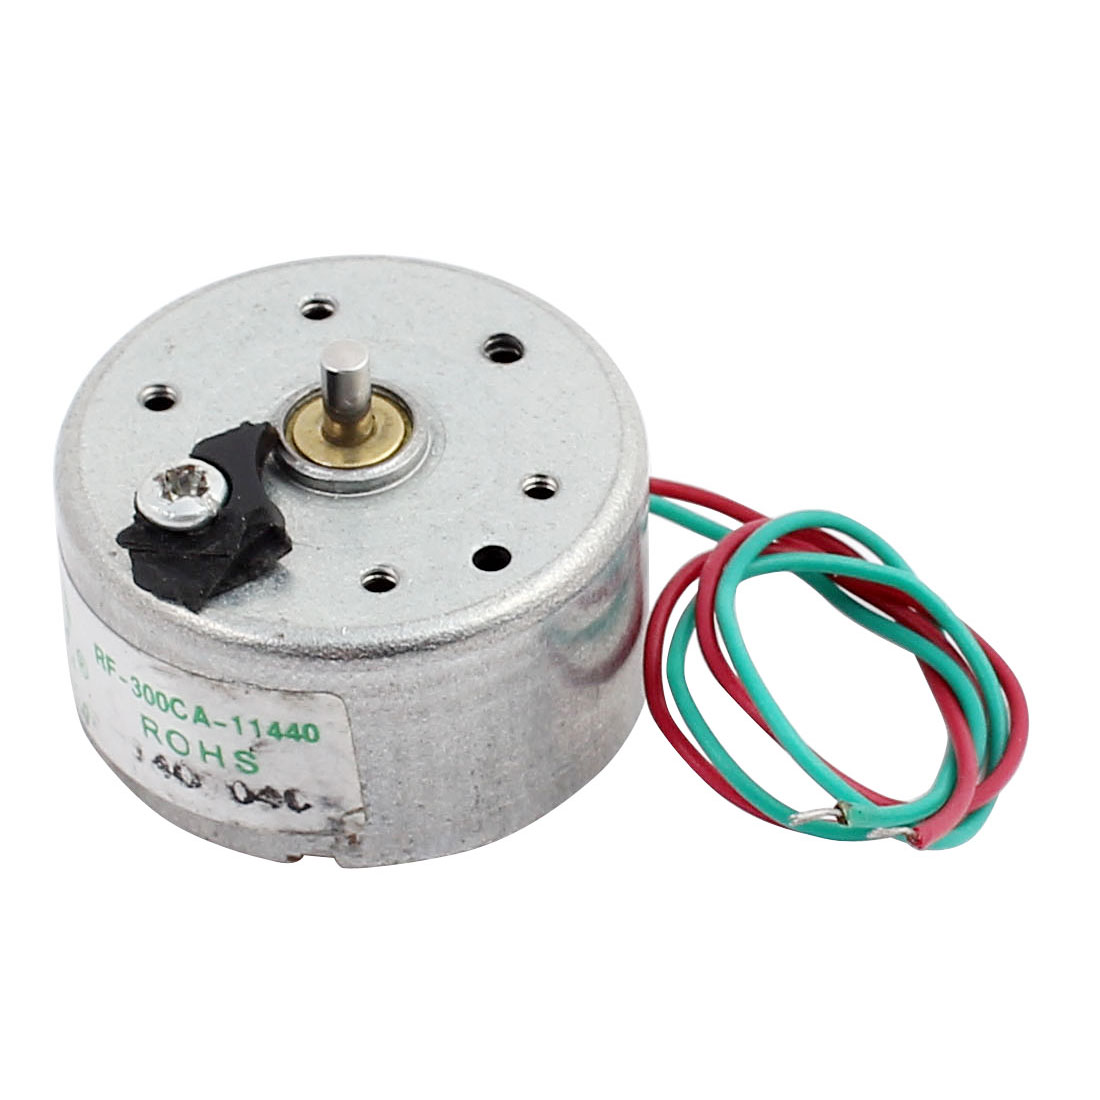 DC1.5V-9V 6000RPM Rotary Speed Electric Motor RC300-FT-08800 for DIY Model Toy